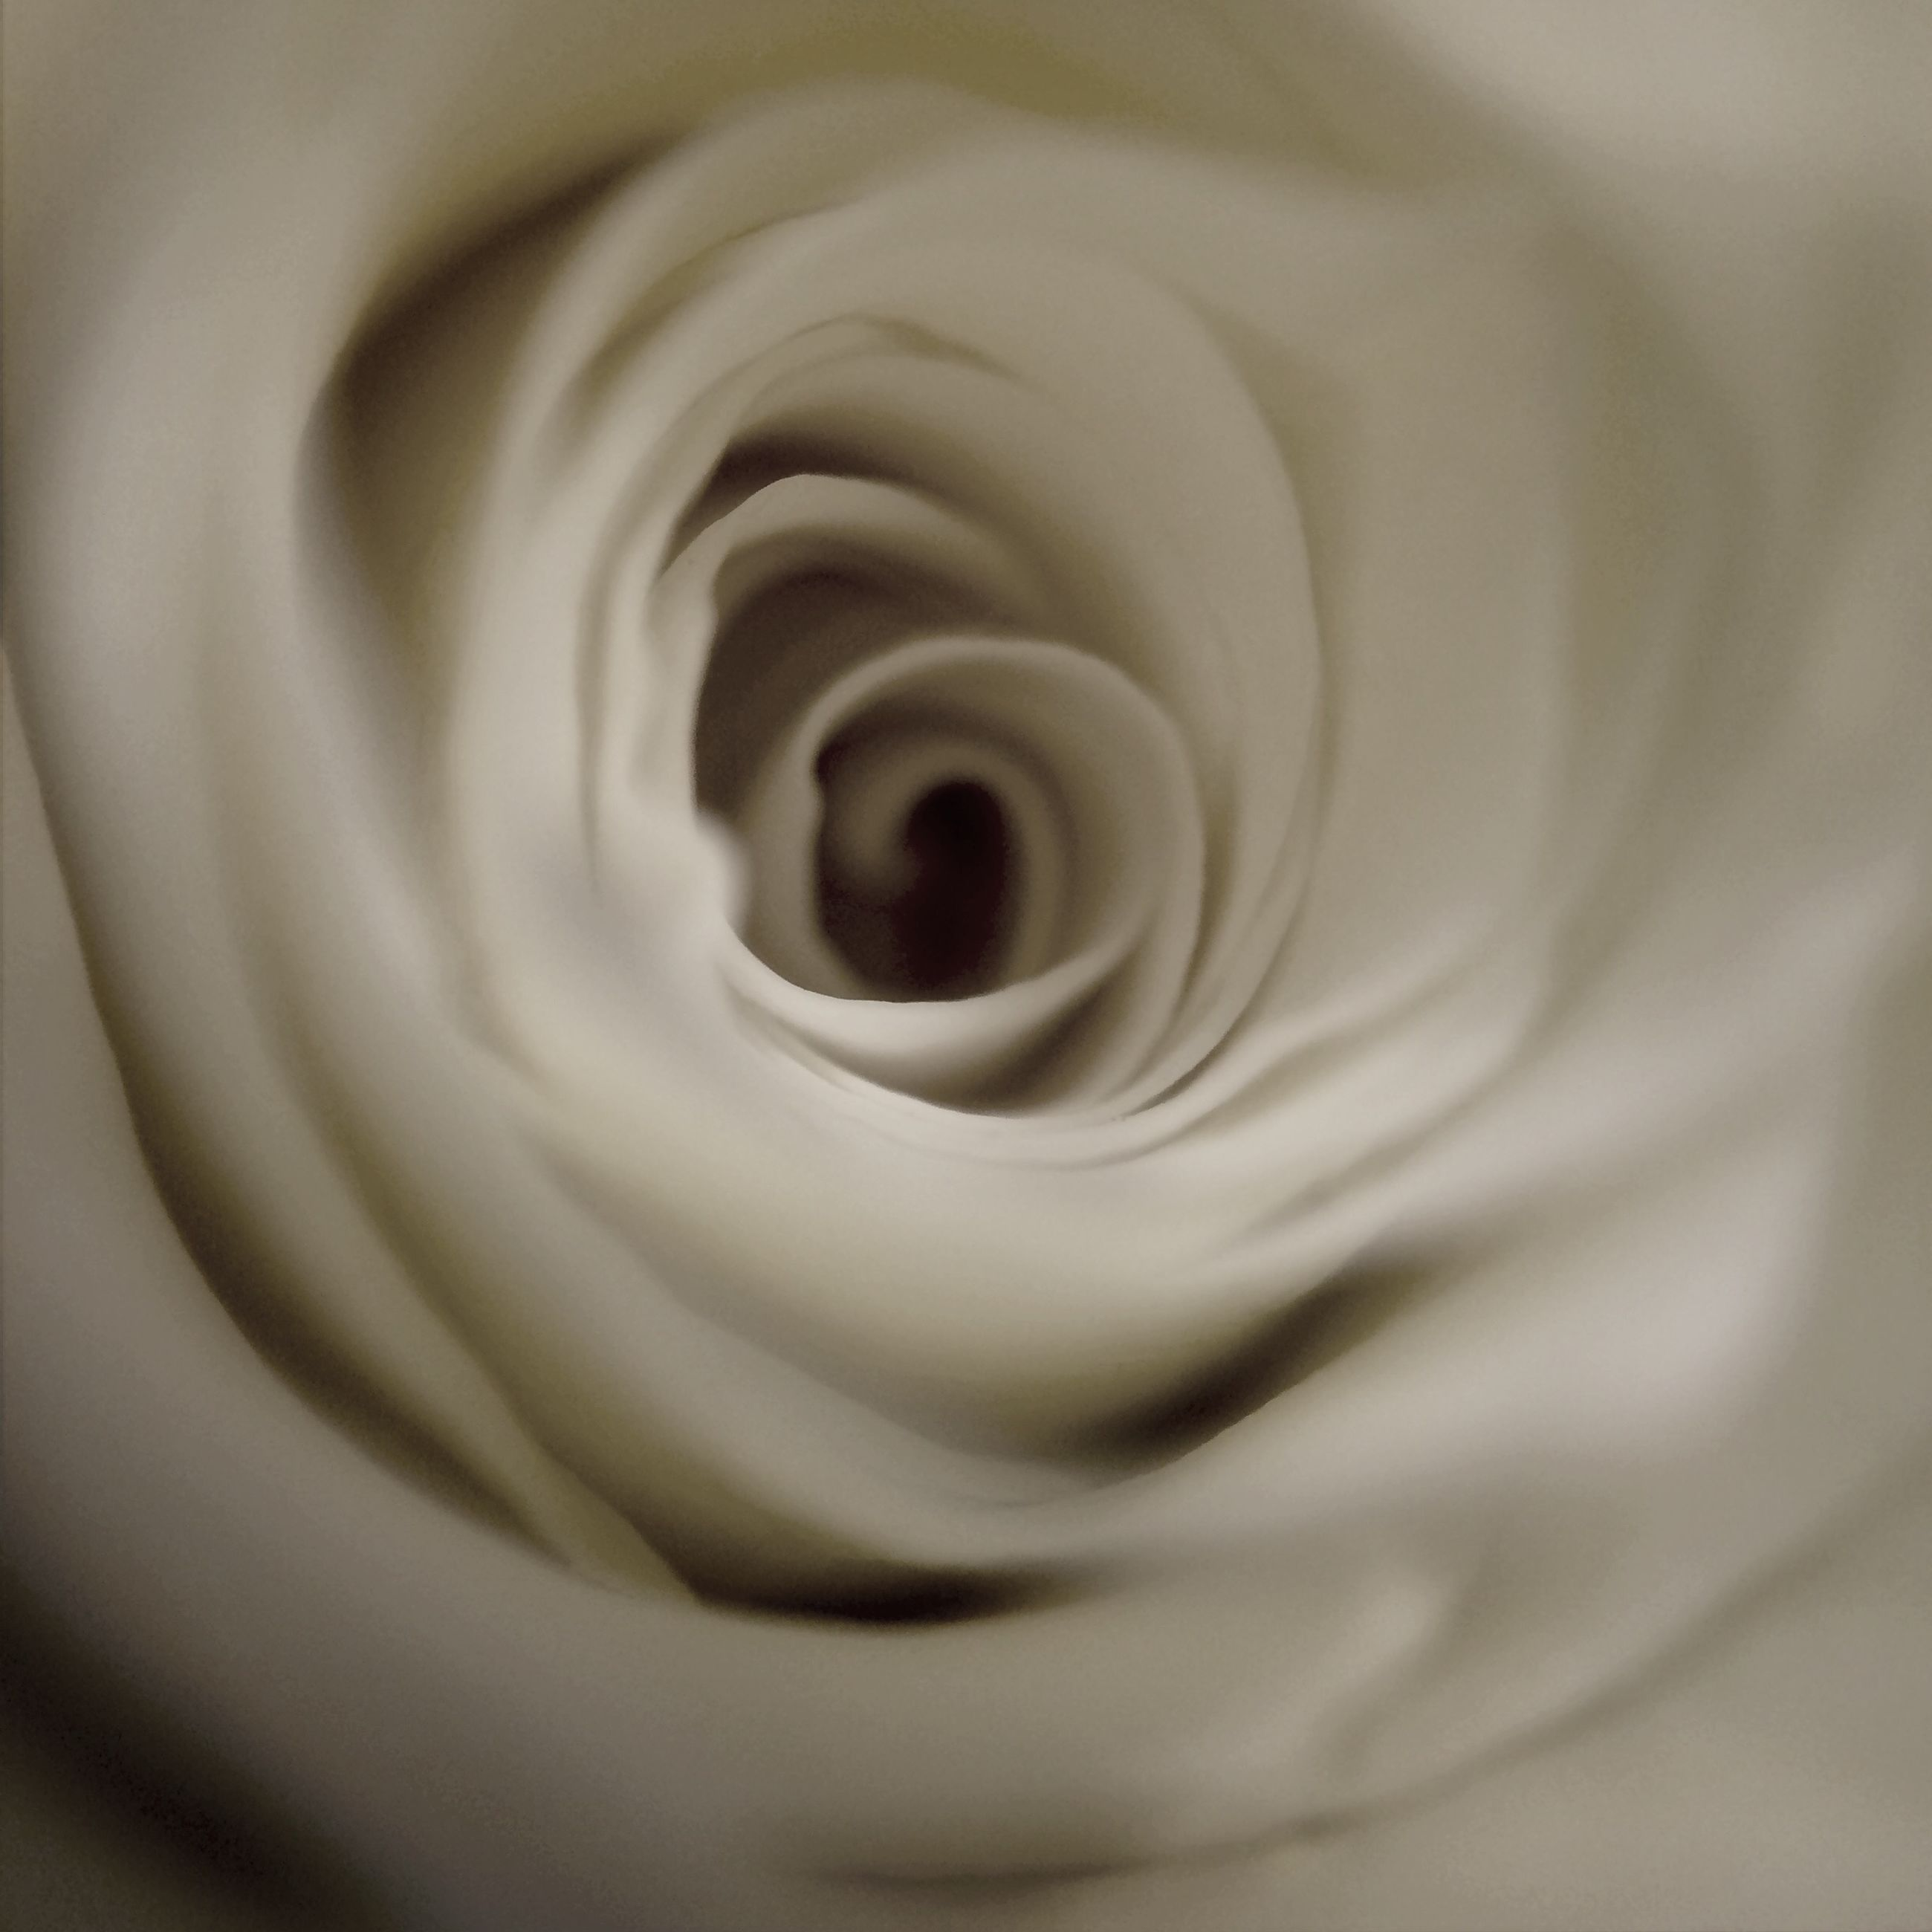 flower, petal, flower head, close-up, fragility, freshness, single flower, white color, beauty in nature, nature, extreme close-up, rose - flower, white, selective focus, indoors, growth, no people, blooming, macro, detail